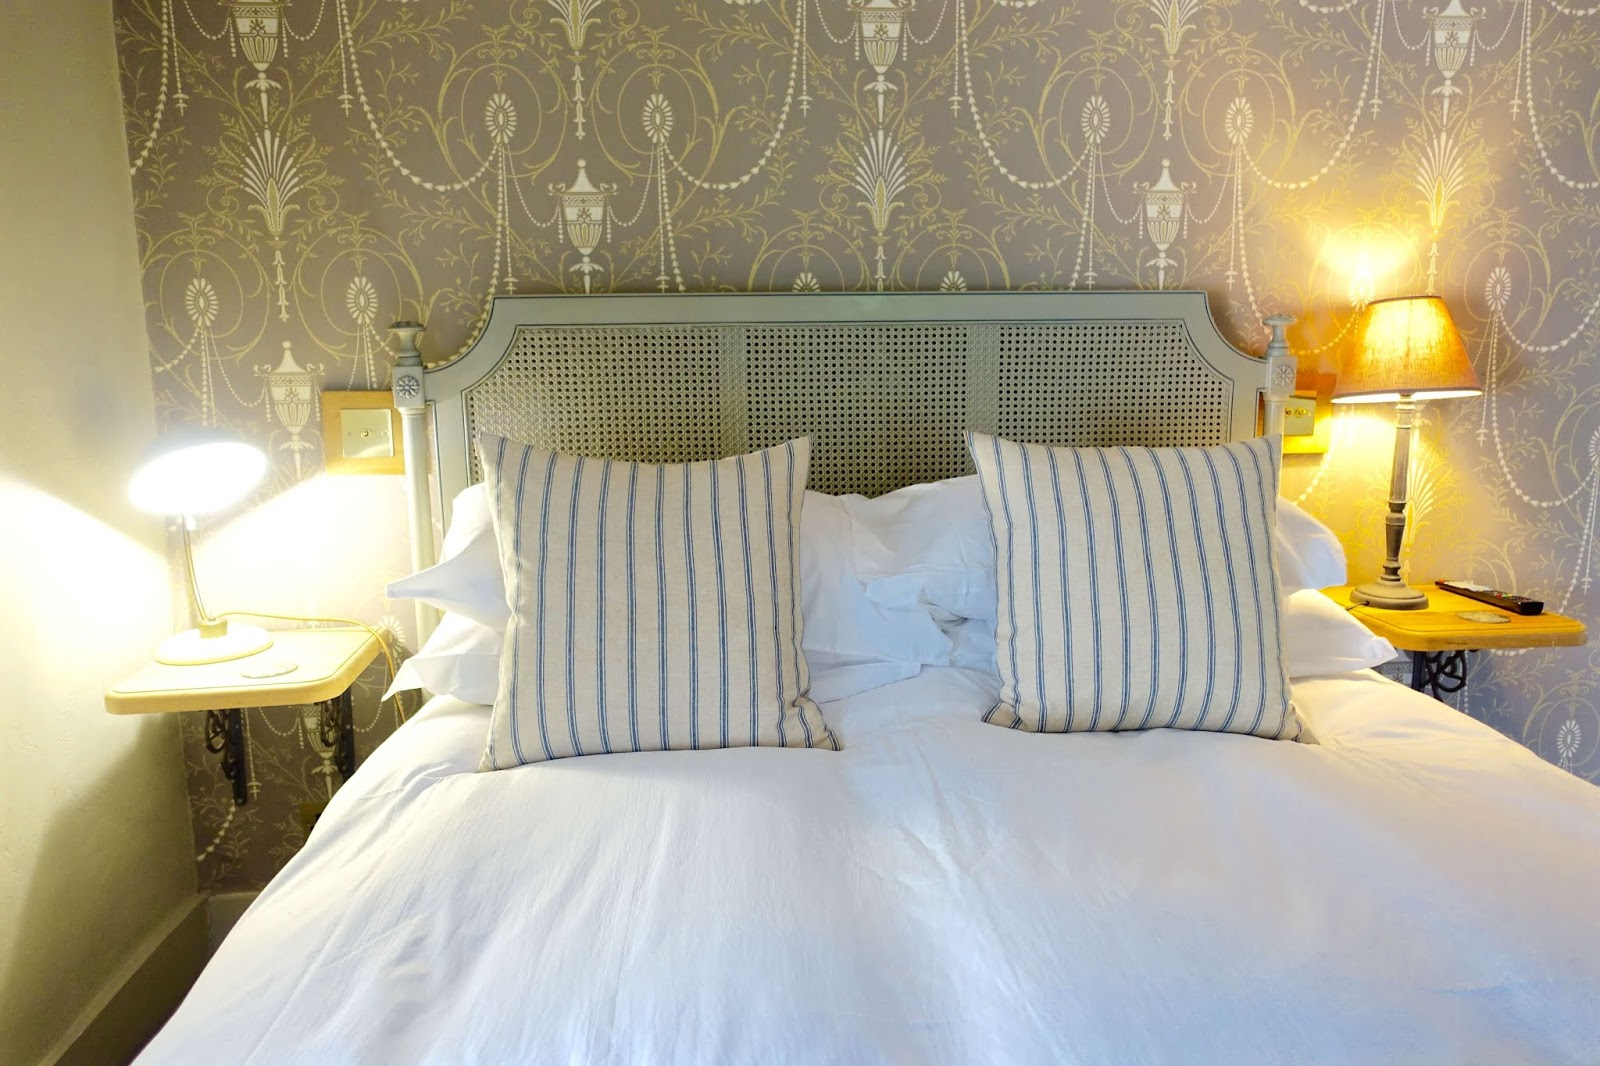 luxury rooms at running horses pub in mickleham